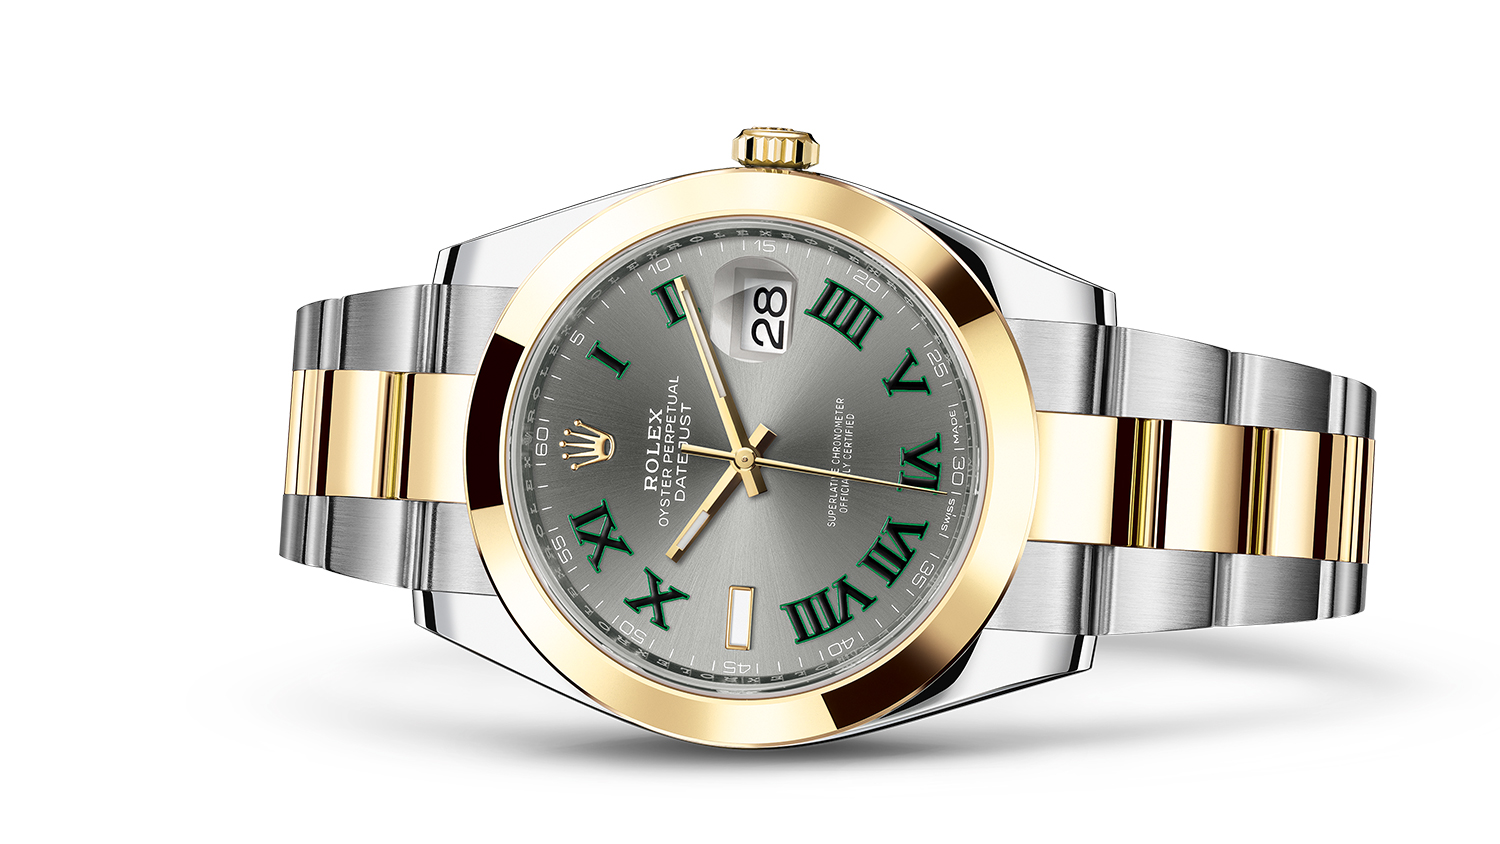 DATEJUST 41 Oyster, 41 mm, steel and yellow gold